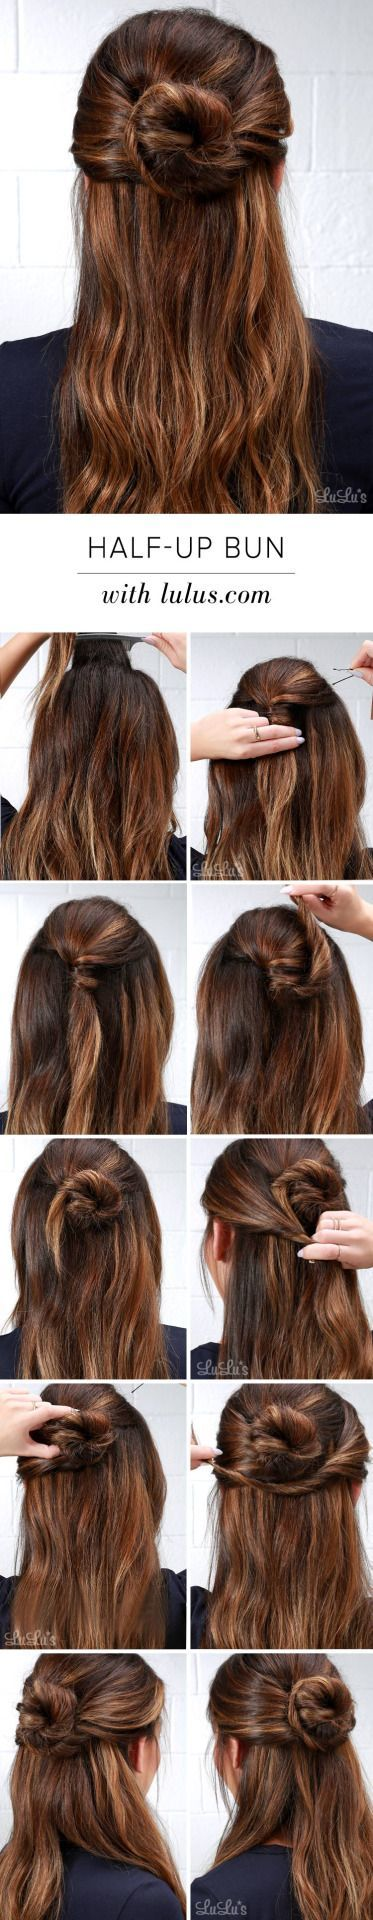 Half up bun tutorial hairstyles for long hair outfit of the day half up bun tutorial hairstyles for long hair solutioingenieria Image collections